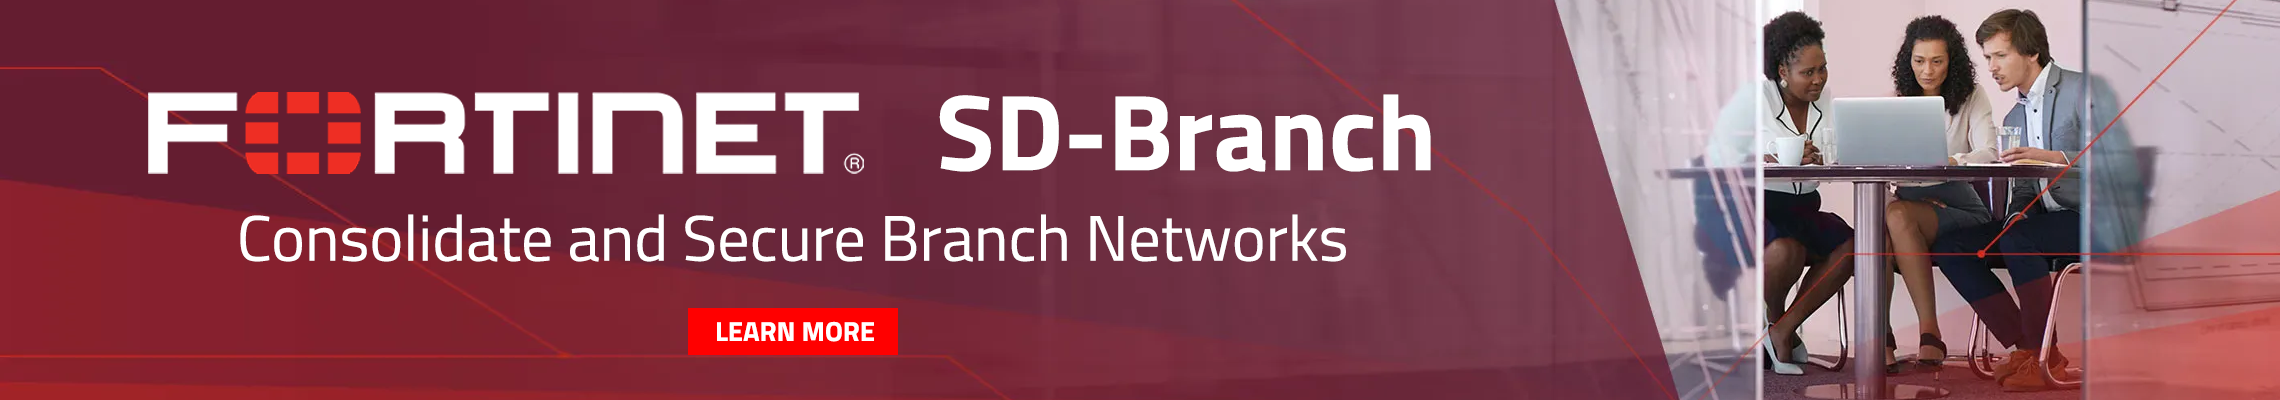 Fortinet SD-Branch Banner